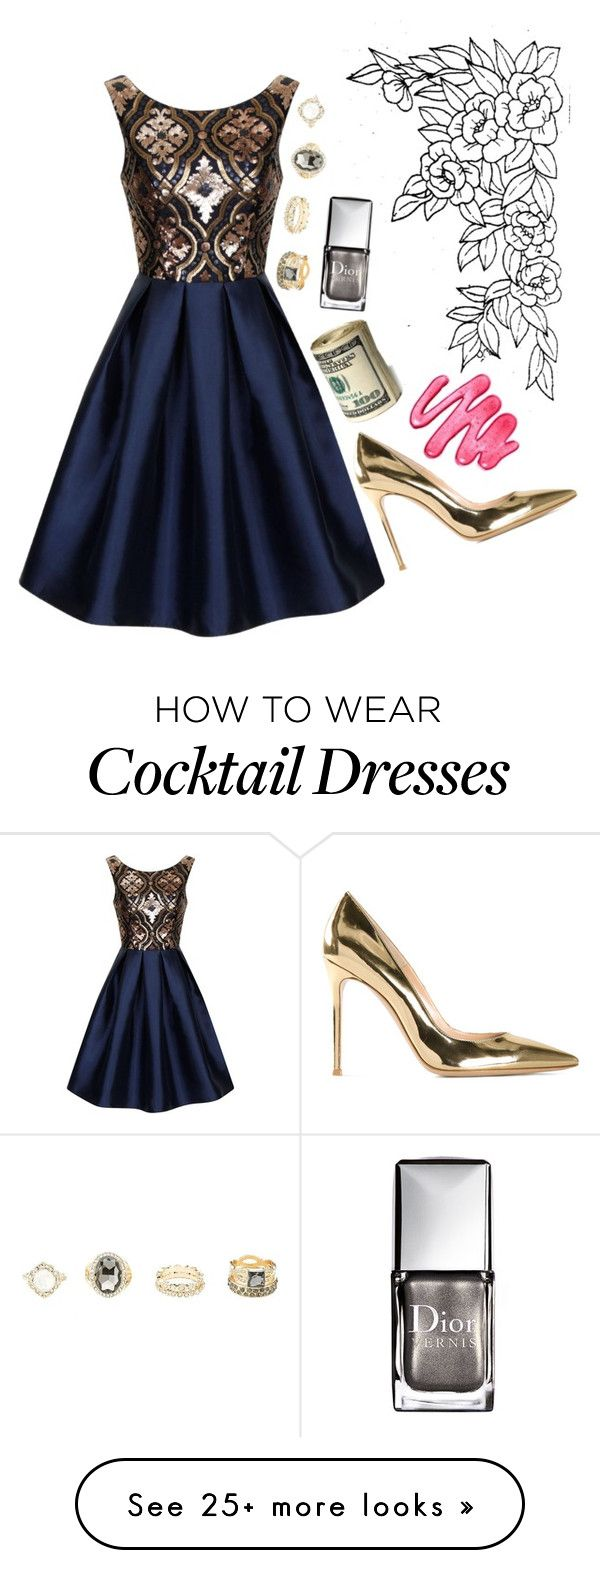 """R"" by weirdestgirlever on Polyvore featuring Chi Chi, Gianvito Rossi, Charlotte Russe and Christian Dior"